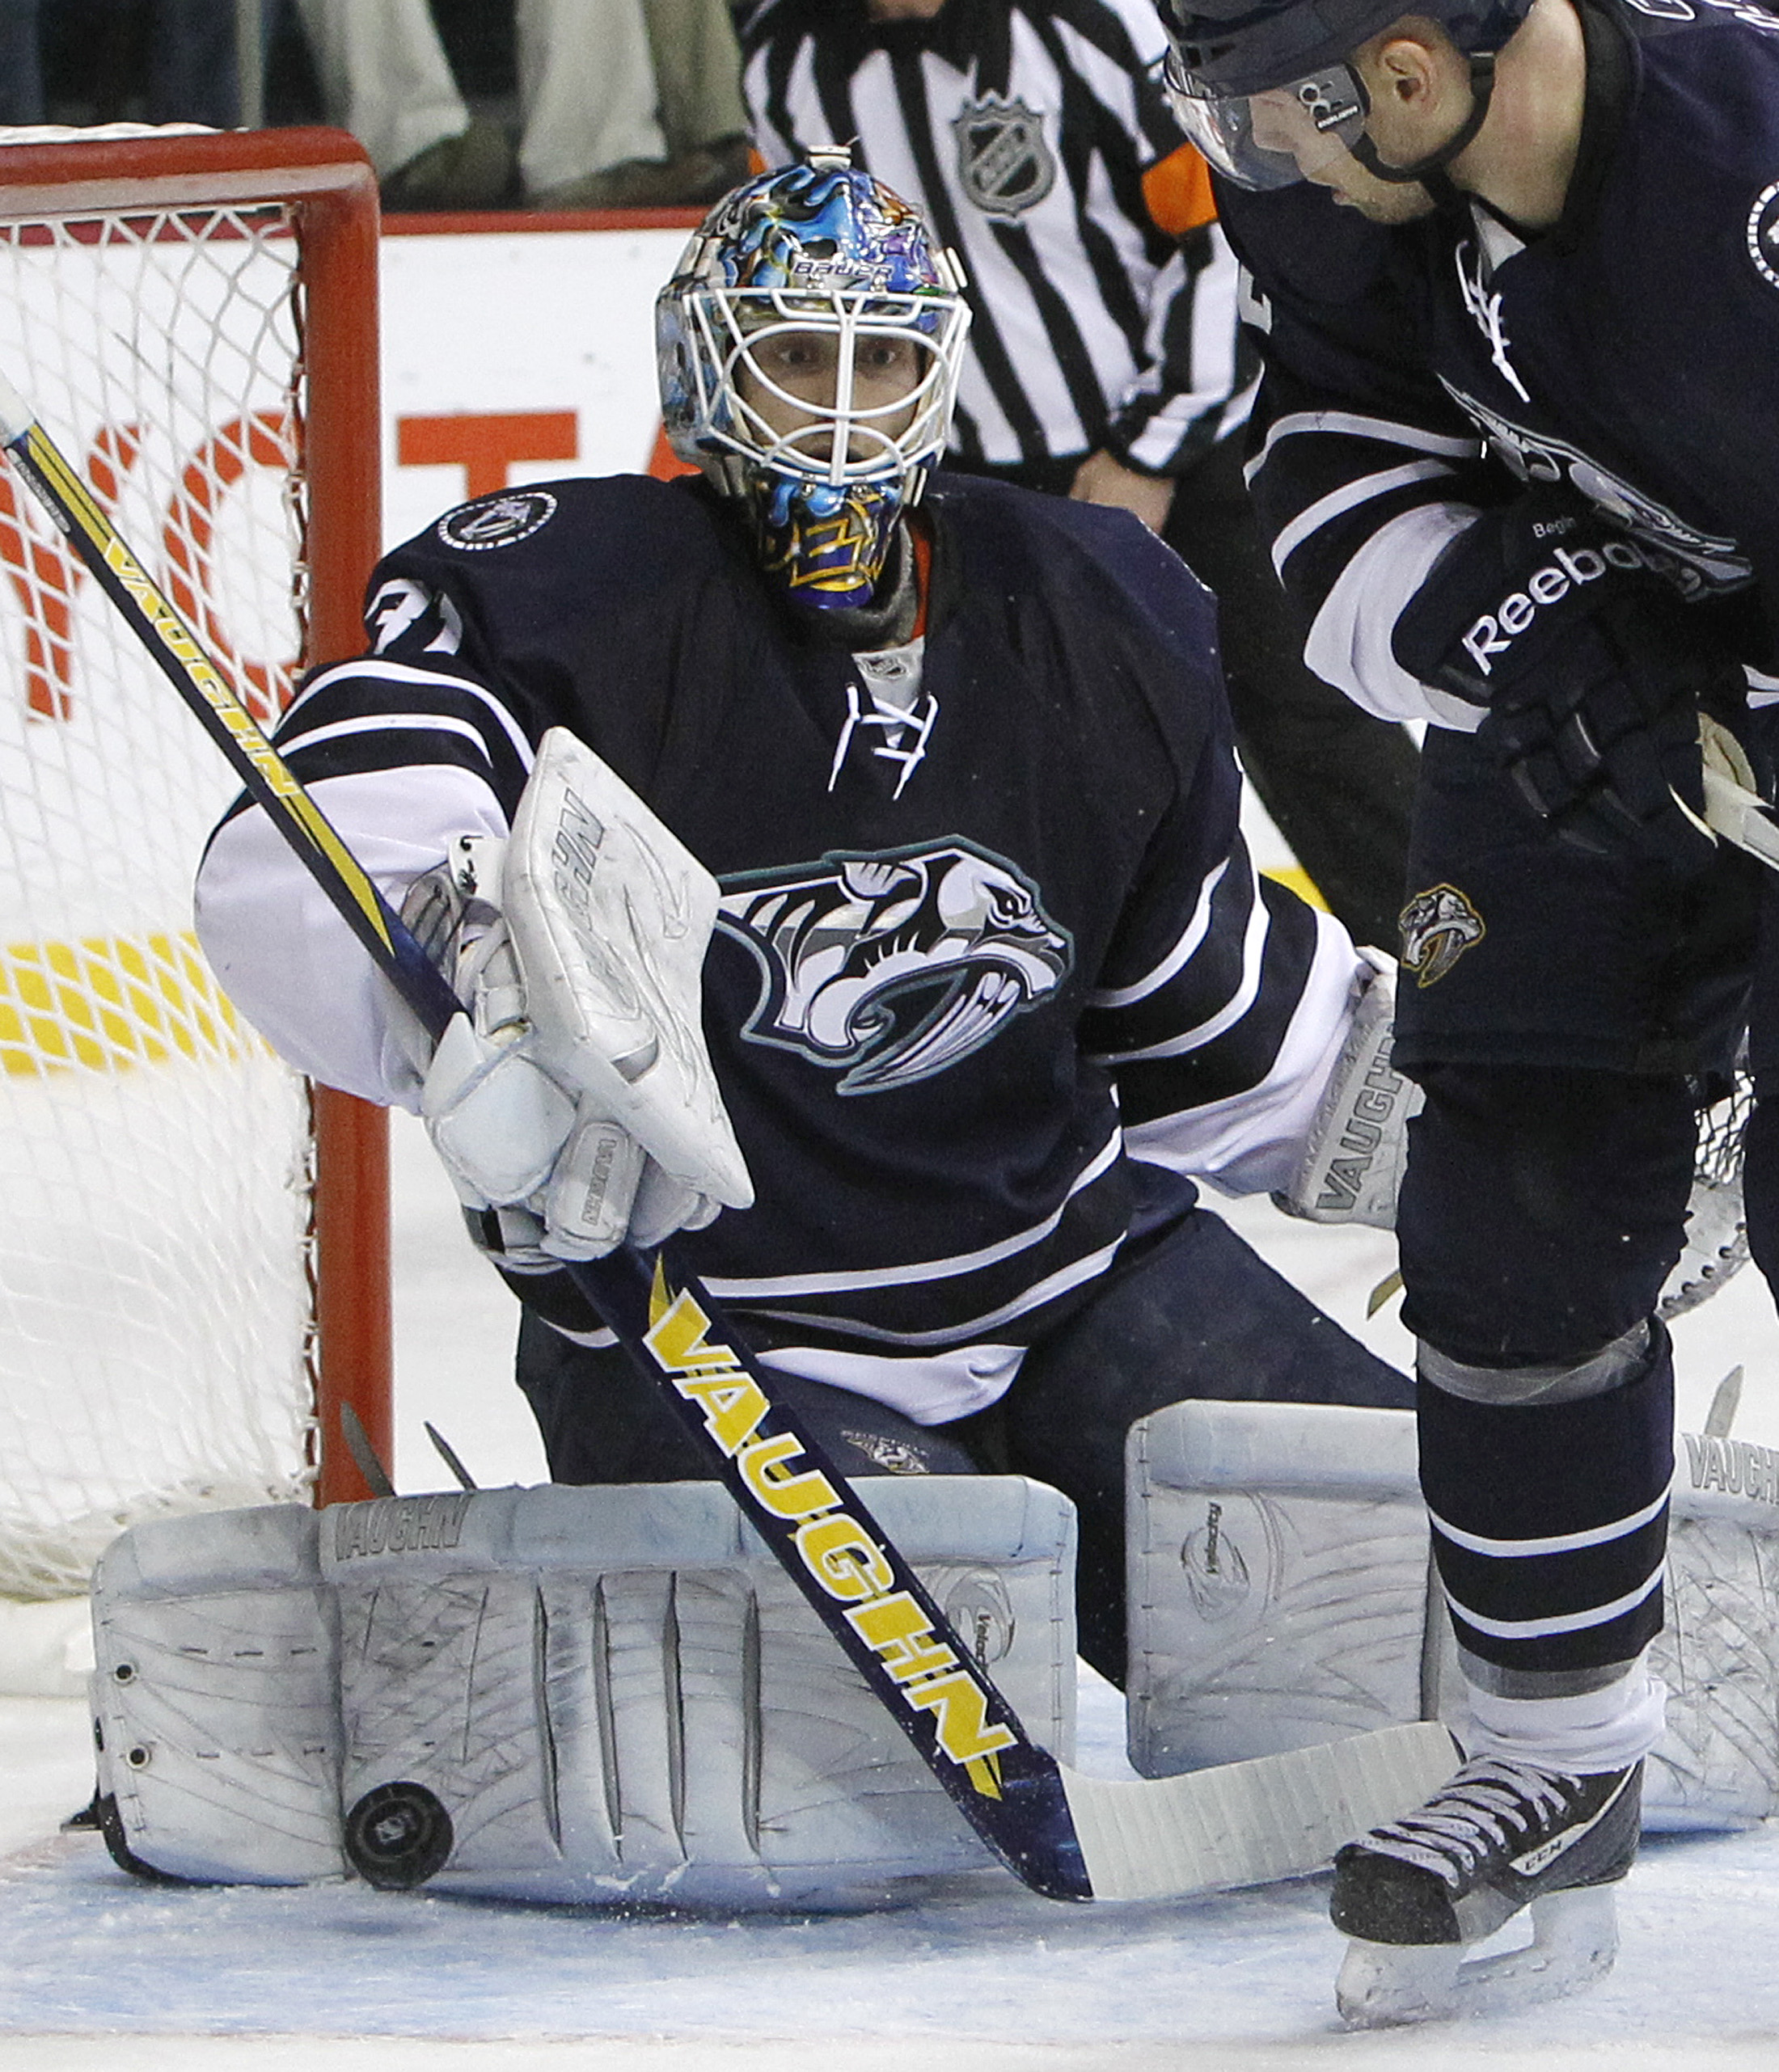 FILE - In this Dec. 18, 2010, file photo, Nashville Predators goalie Mark Dekanich (31) can't stop a shot by Los Angeles Kings left wing Ryan Smyth, not shown, in the second period of an NHL hockey game in Nashville, Tenn. Dekanich is one of 15 players de